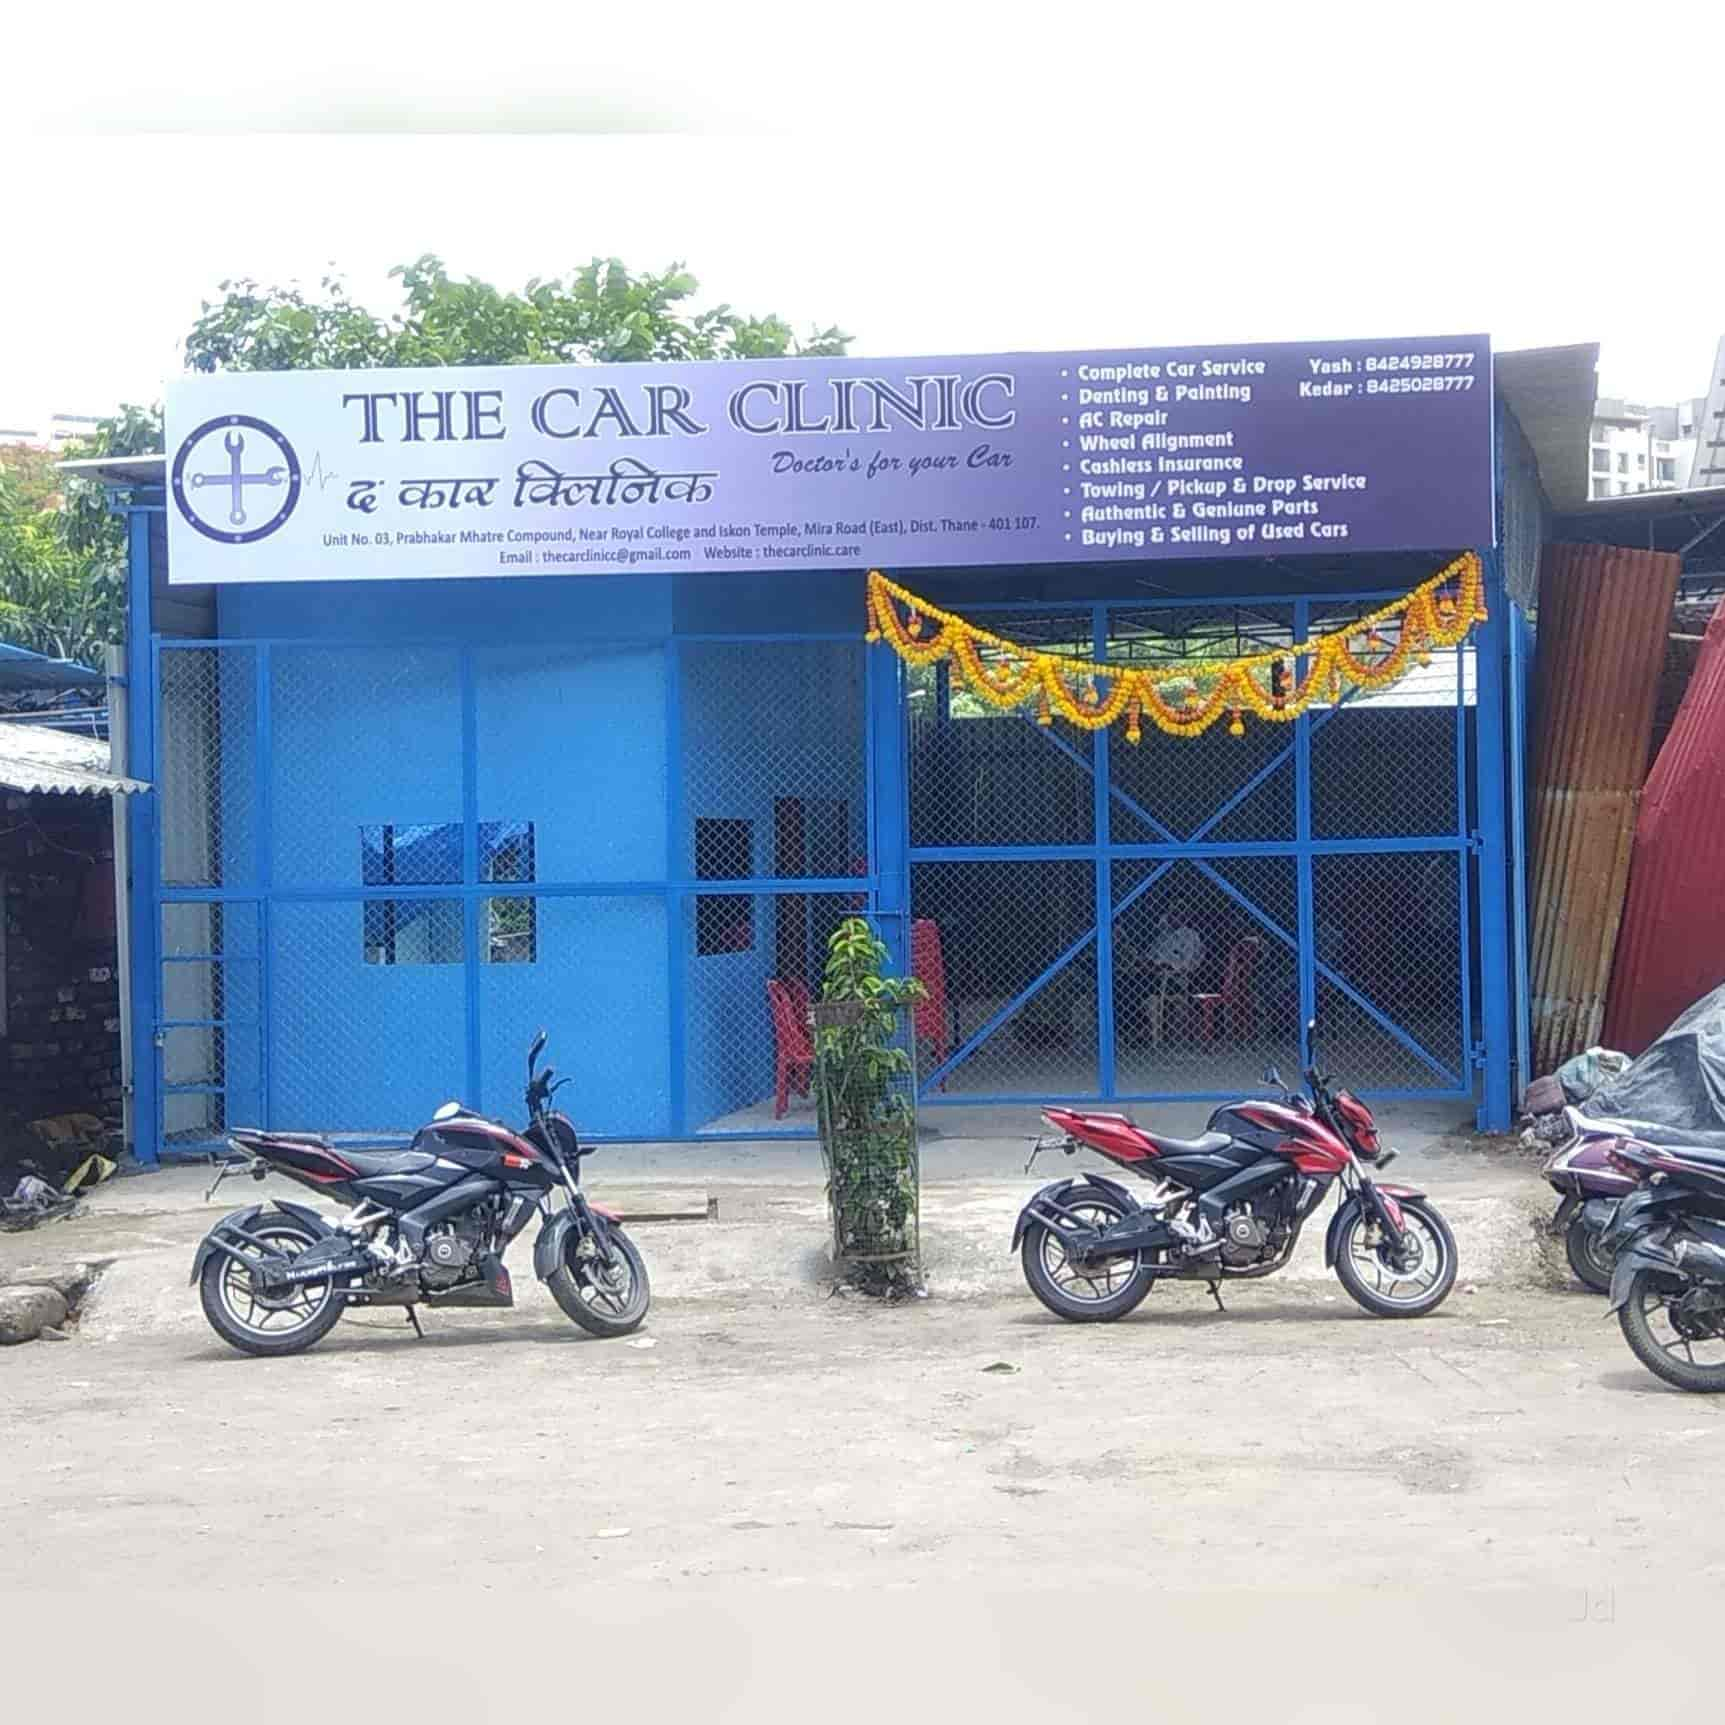 The Car Clinic Photos, Mira Road, Thane- Pictures & Images Gallery